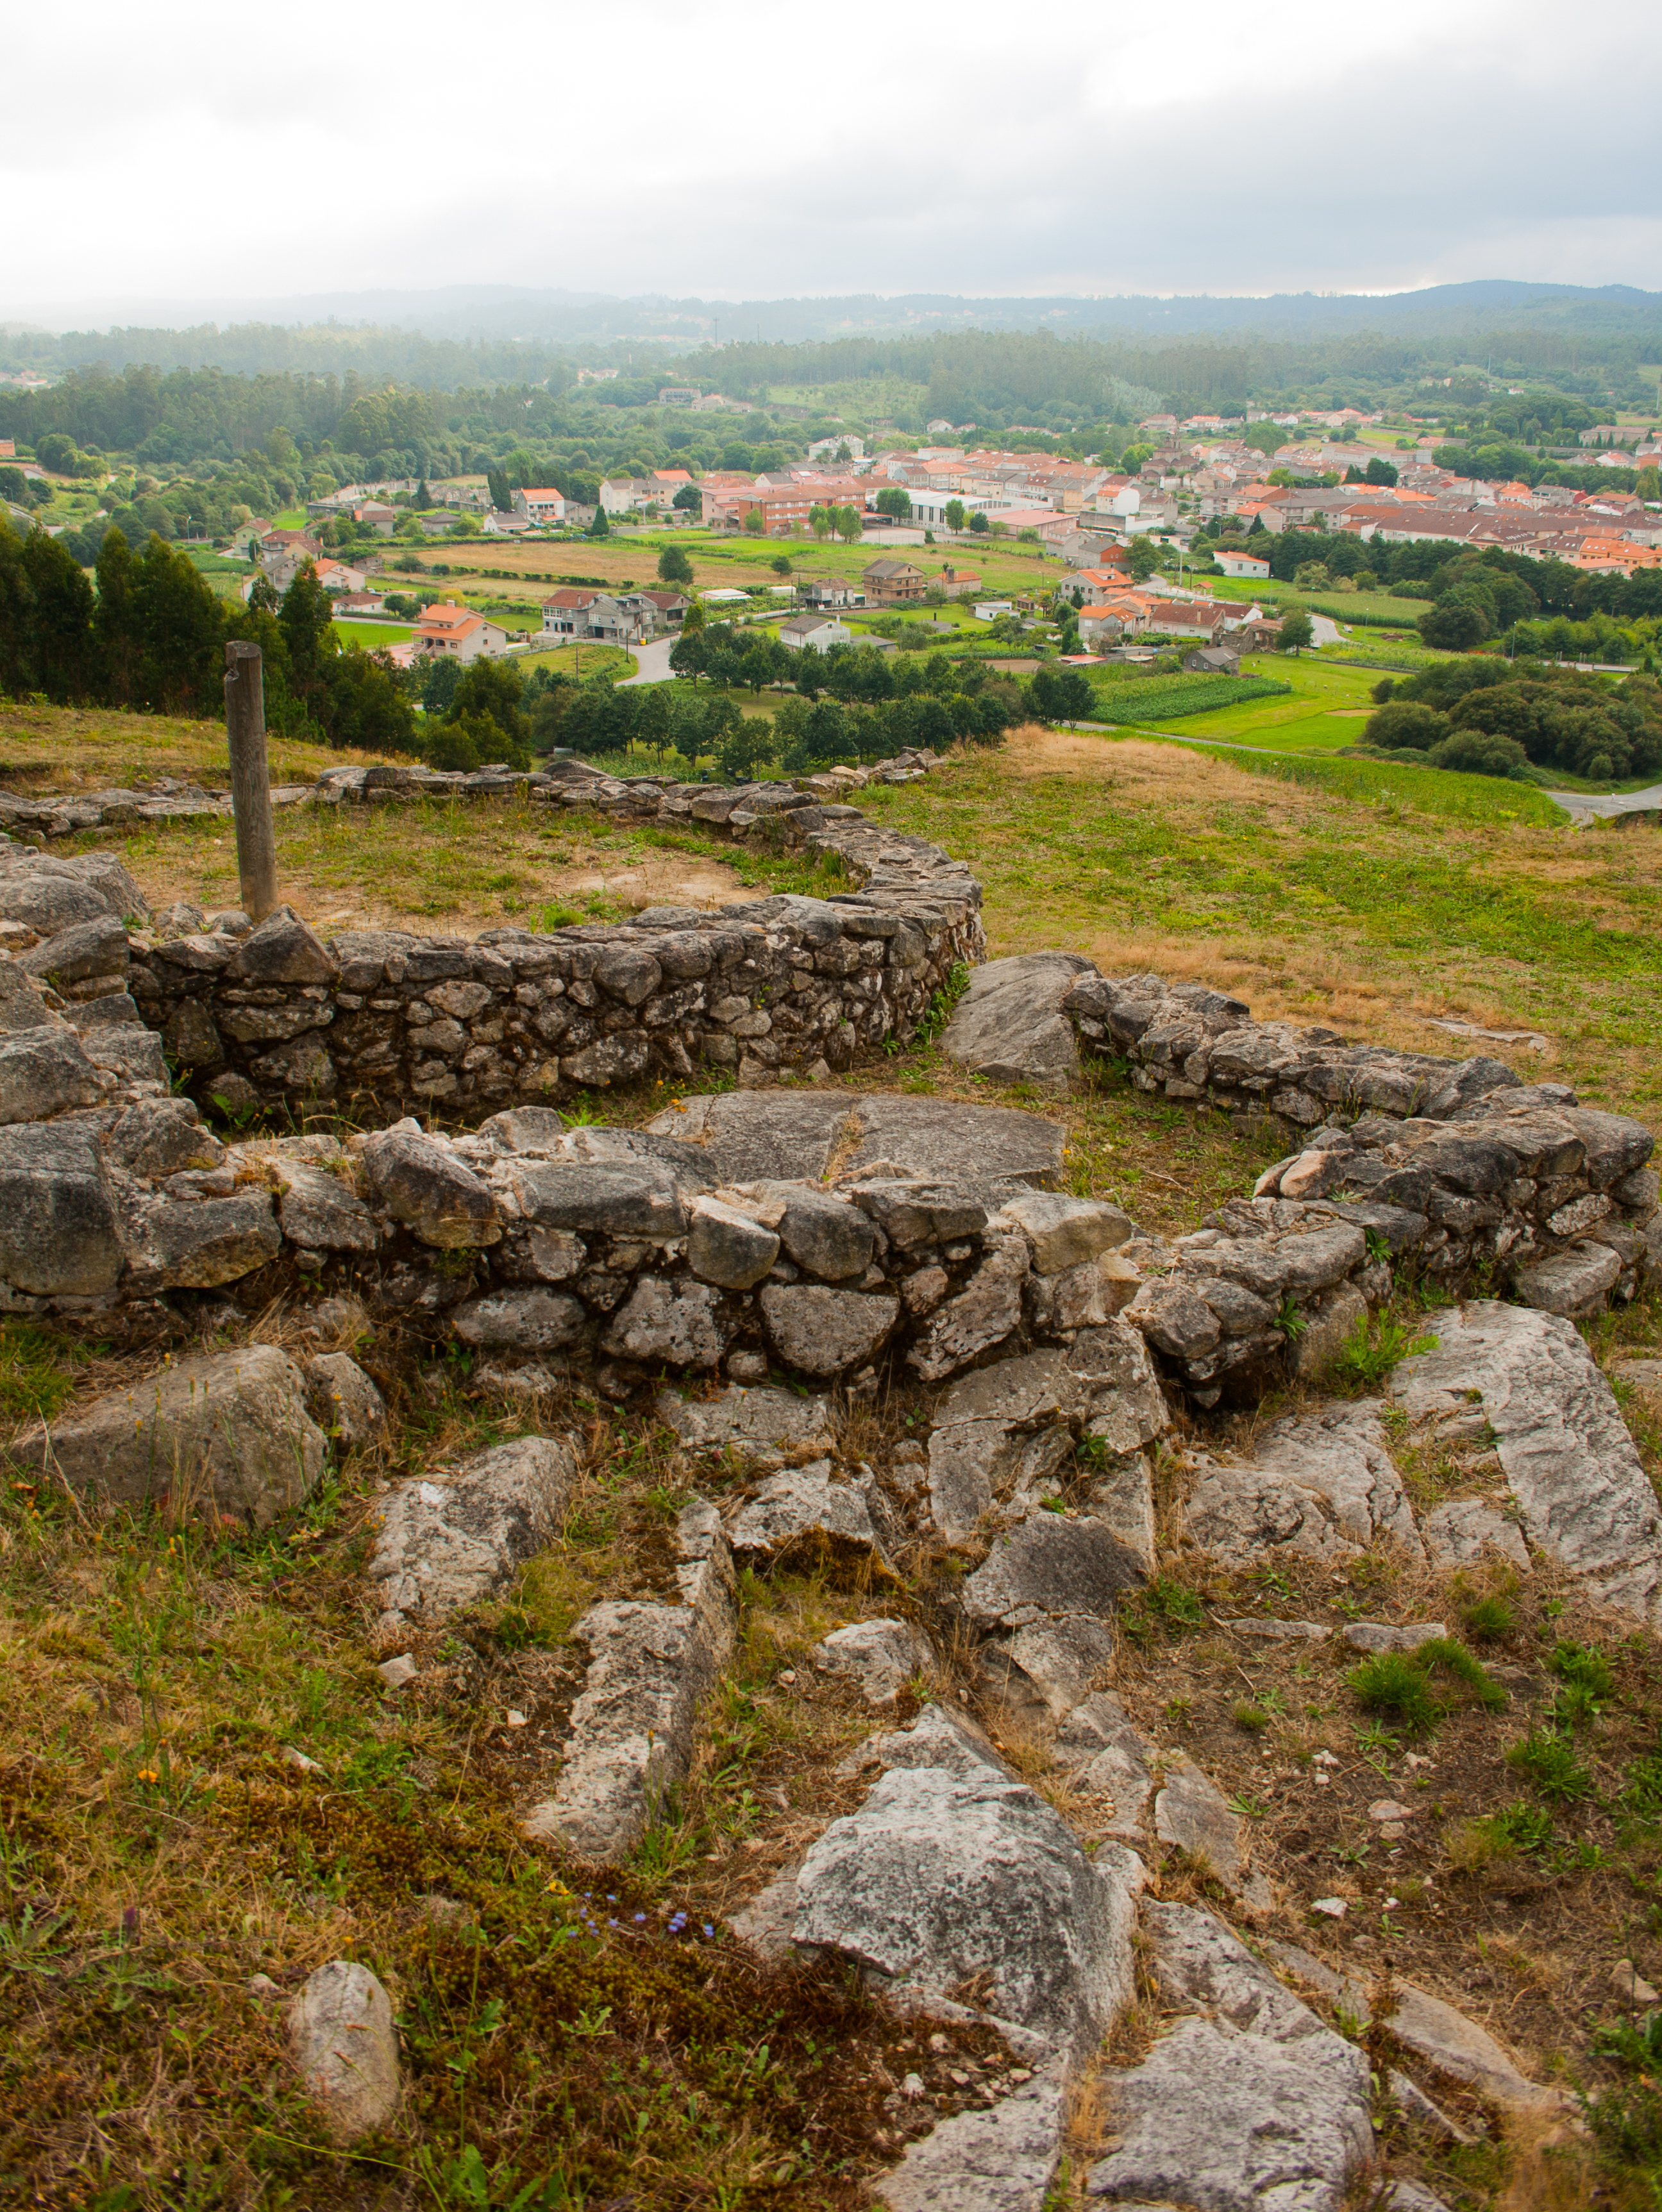 Cuntis Spain  city photos : :Archaeological excavations in Castrolandin, Cuntis, Galicia, Spain ...